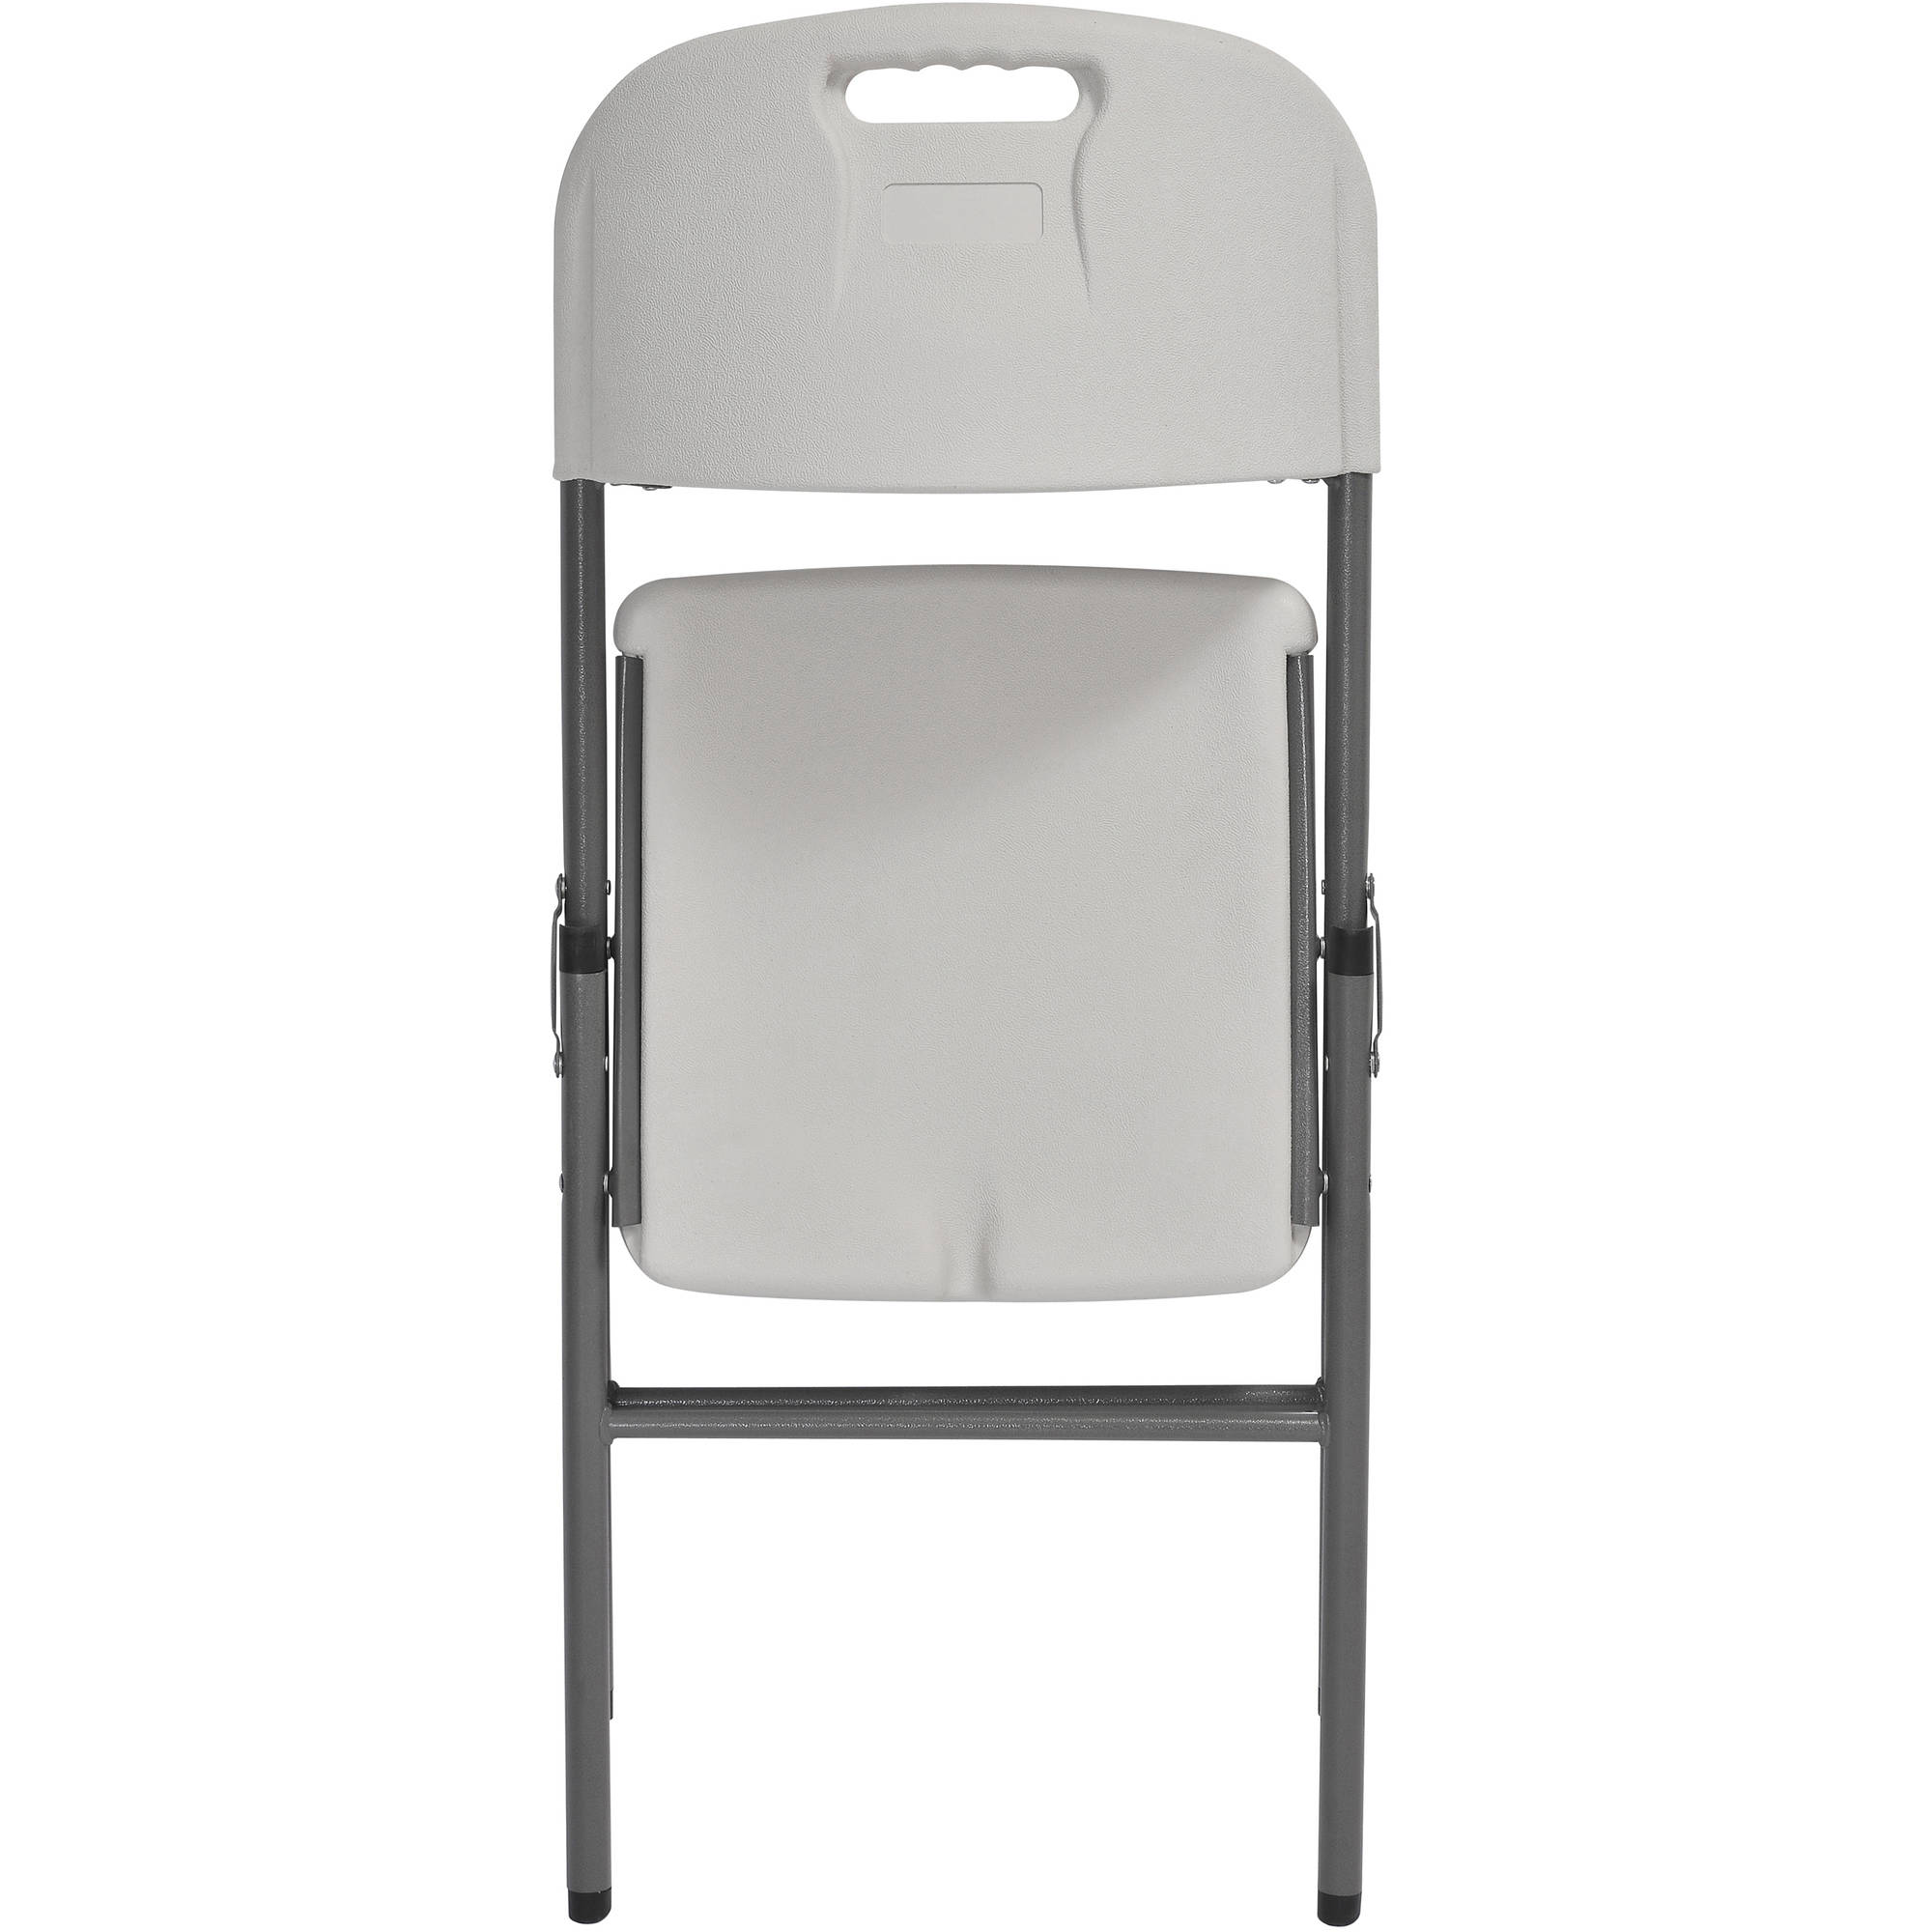 Sandusky Plastic Folding Chairs 4 Pack Walmart